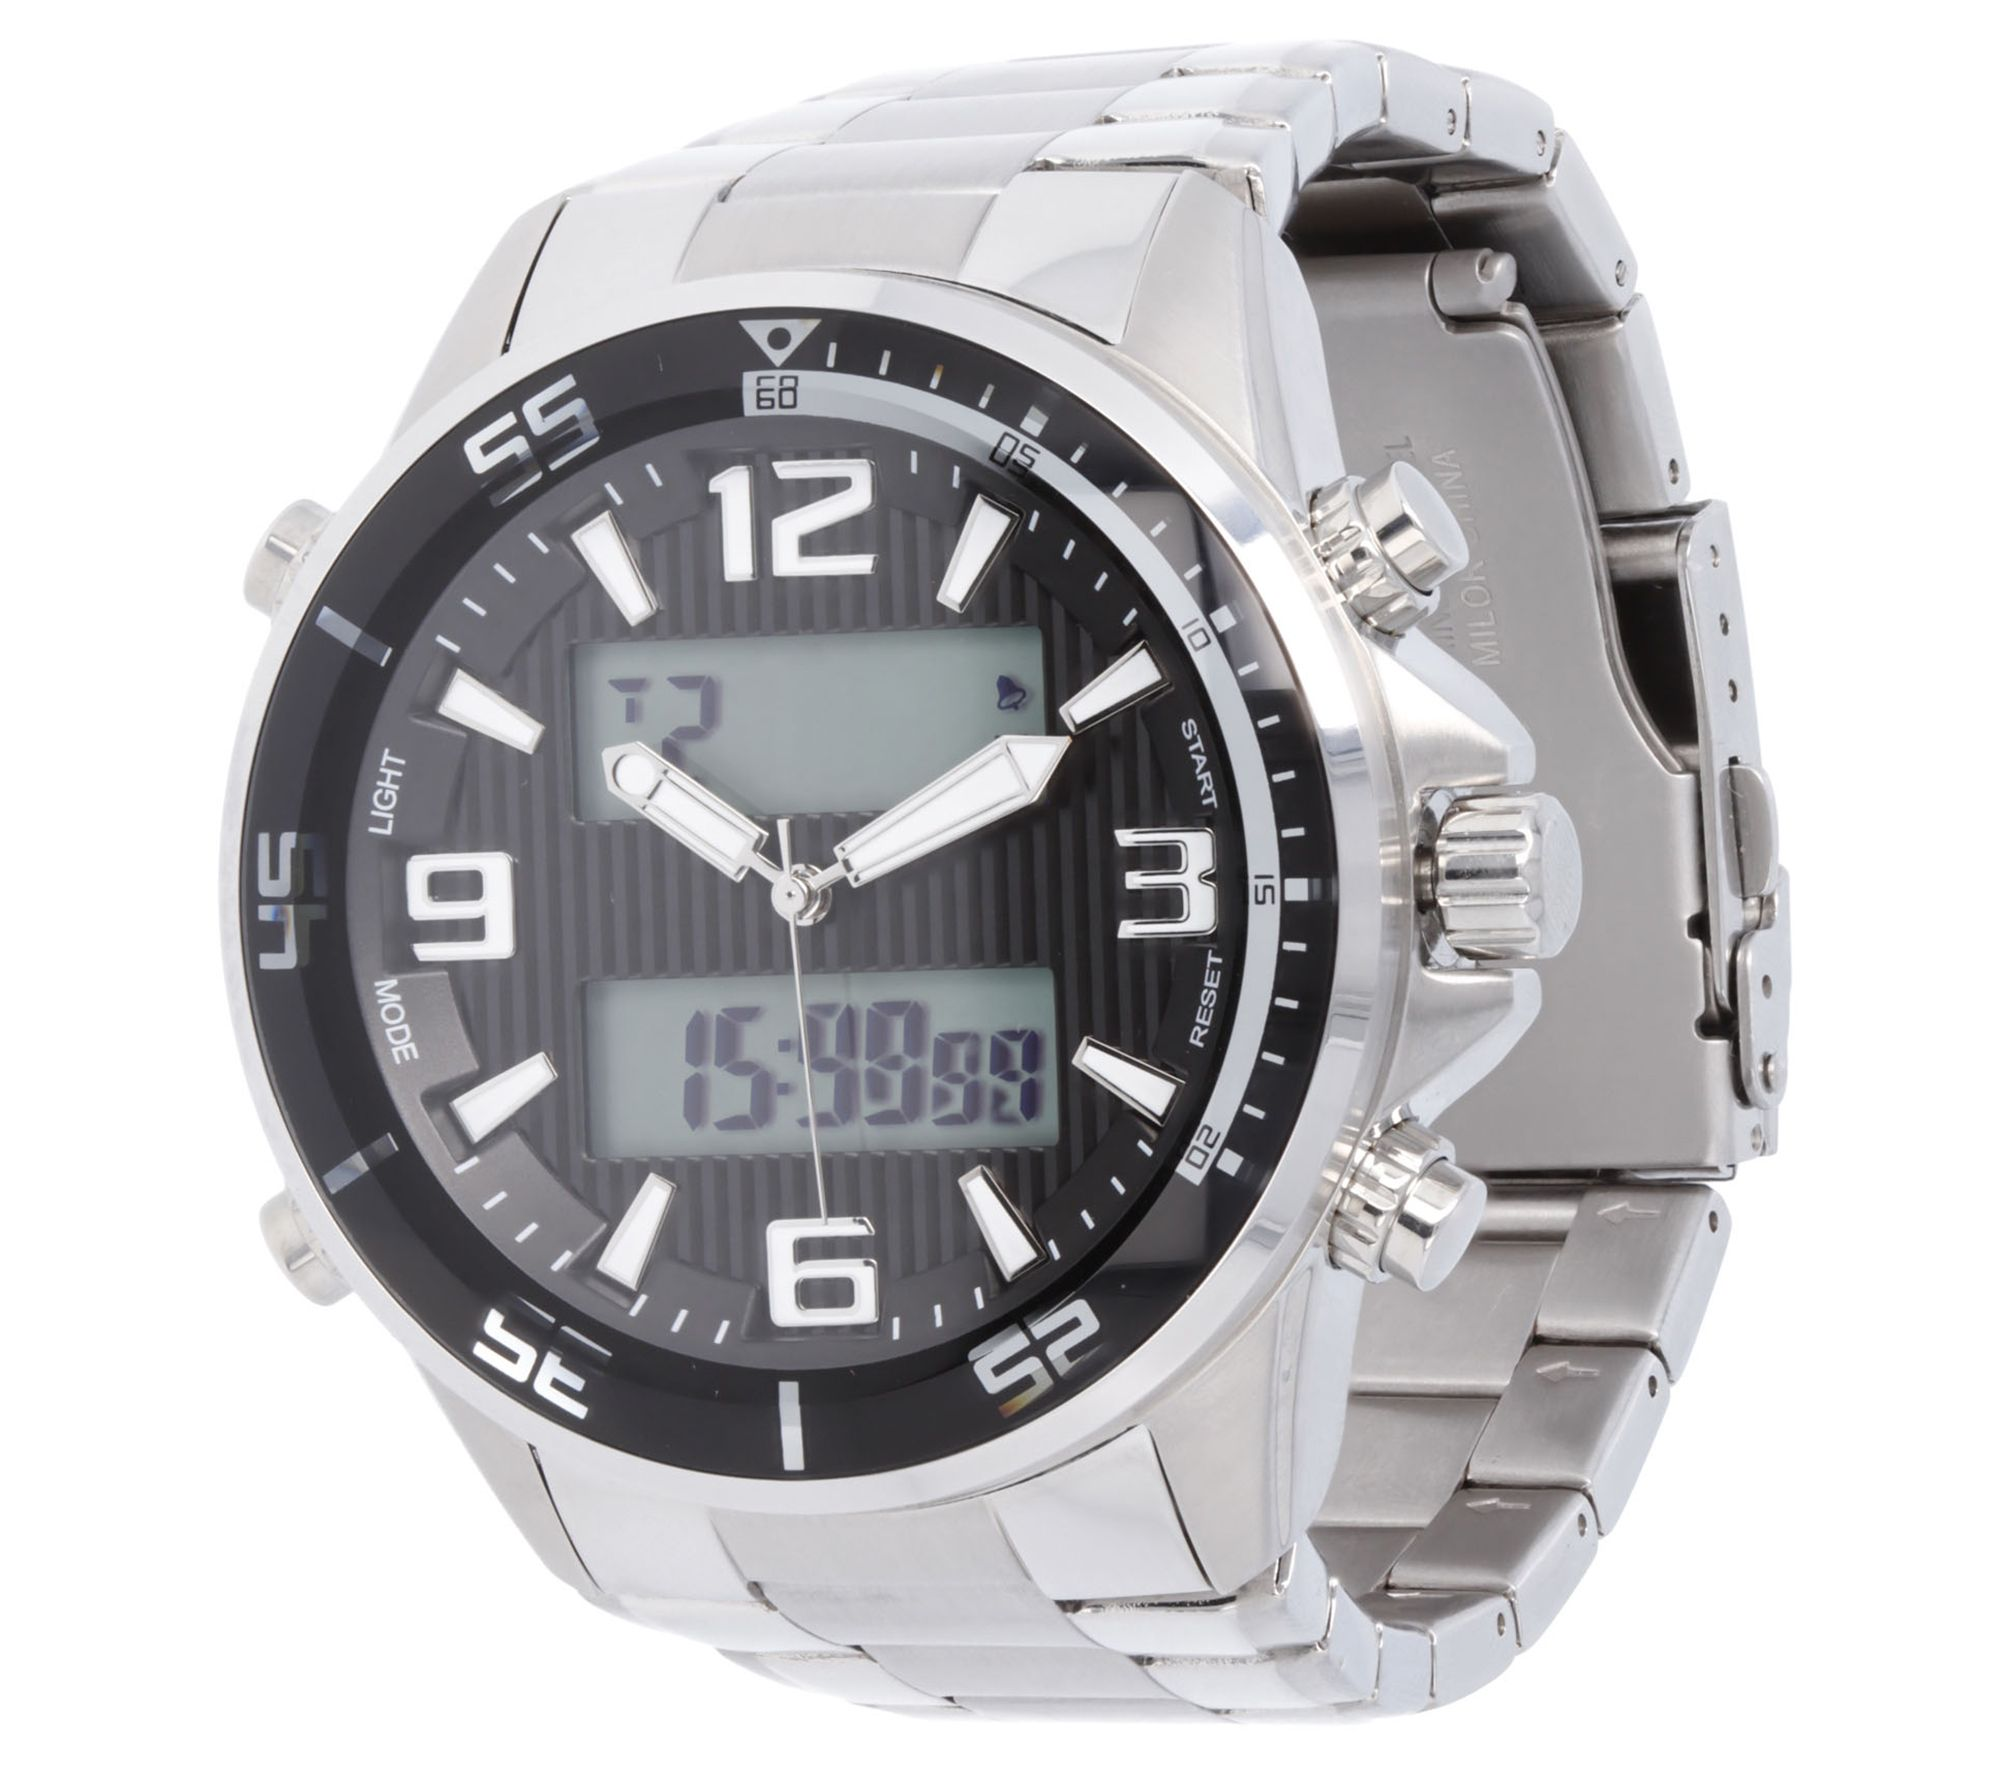 Steel by Design Mens Jewelry Watches Jewelry QVCcom